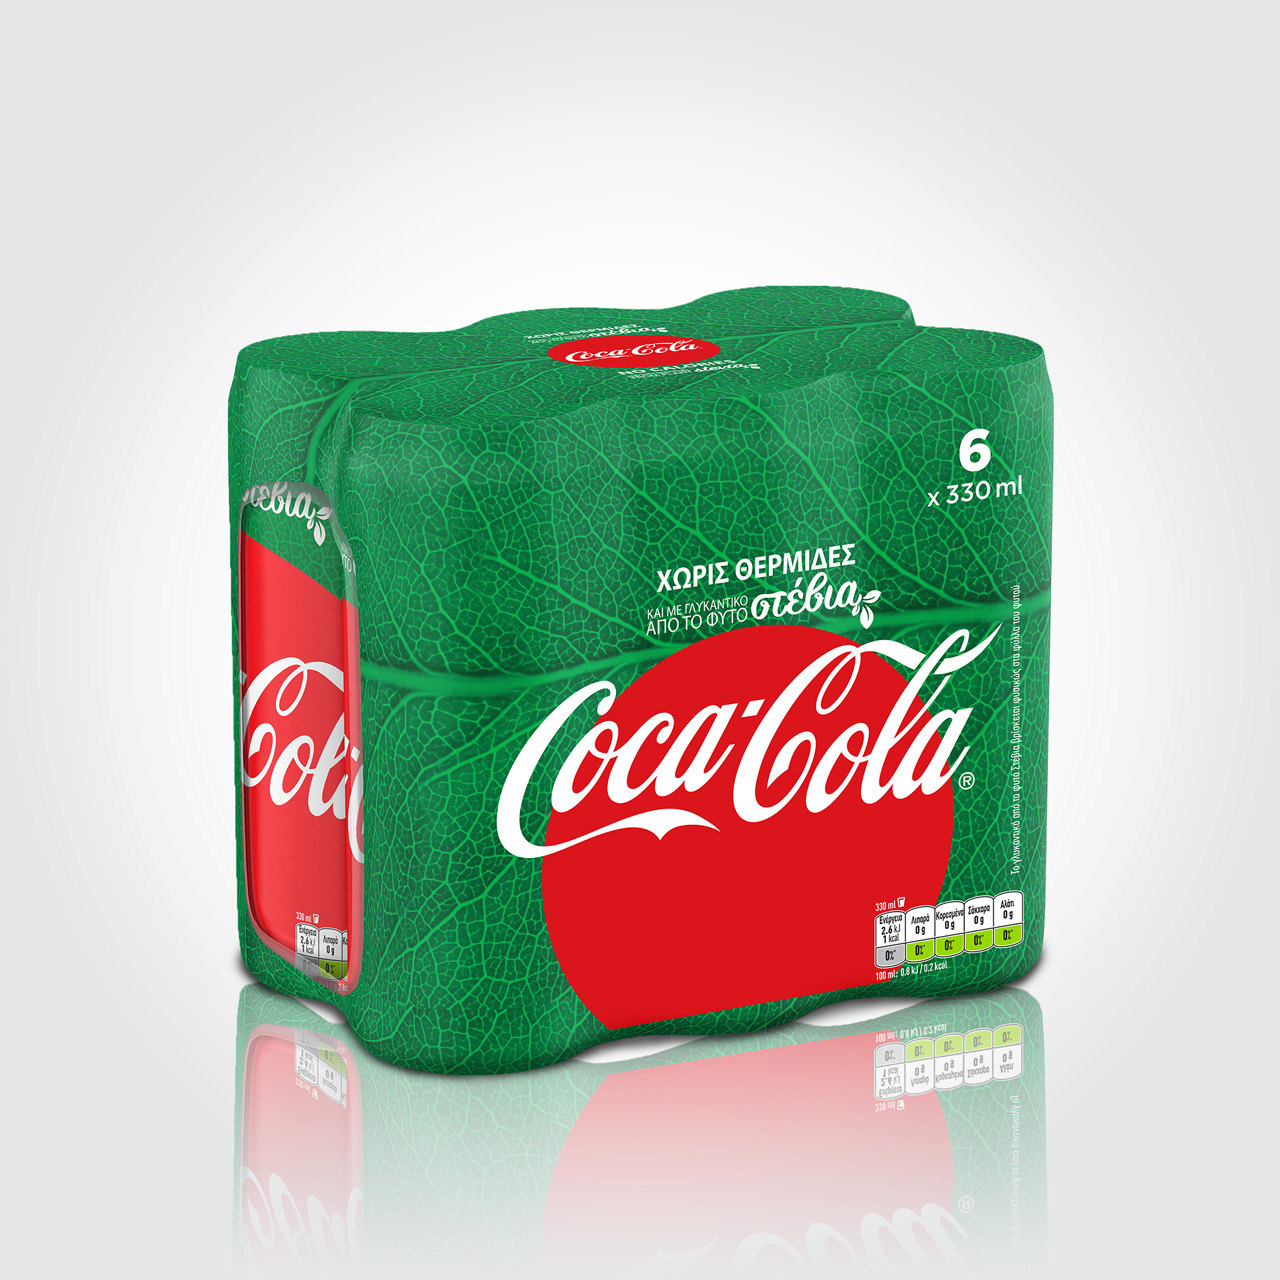 Coca-Cola Stevia redesign 6x330ml shrink wrap